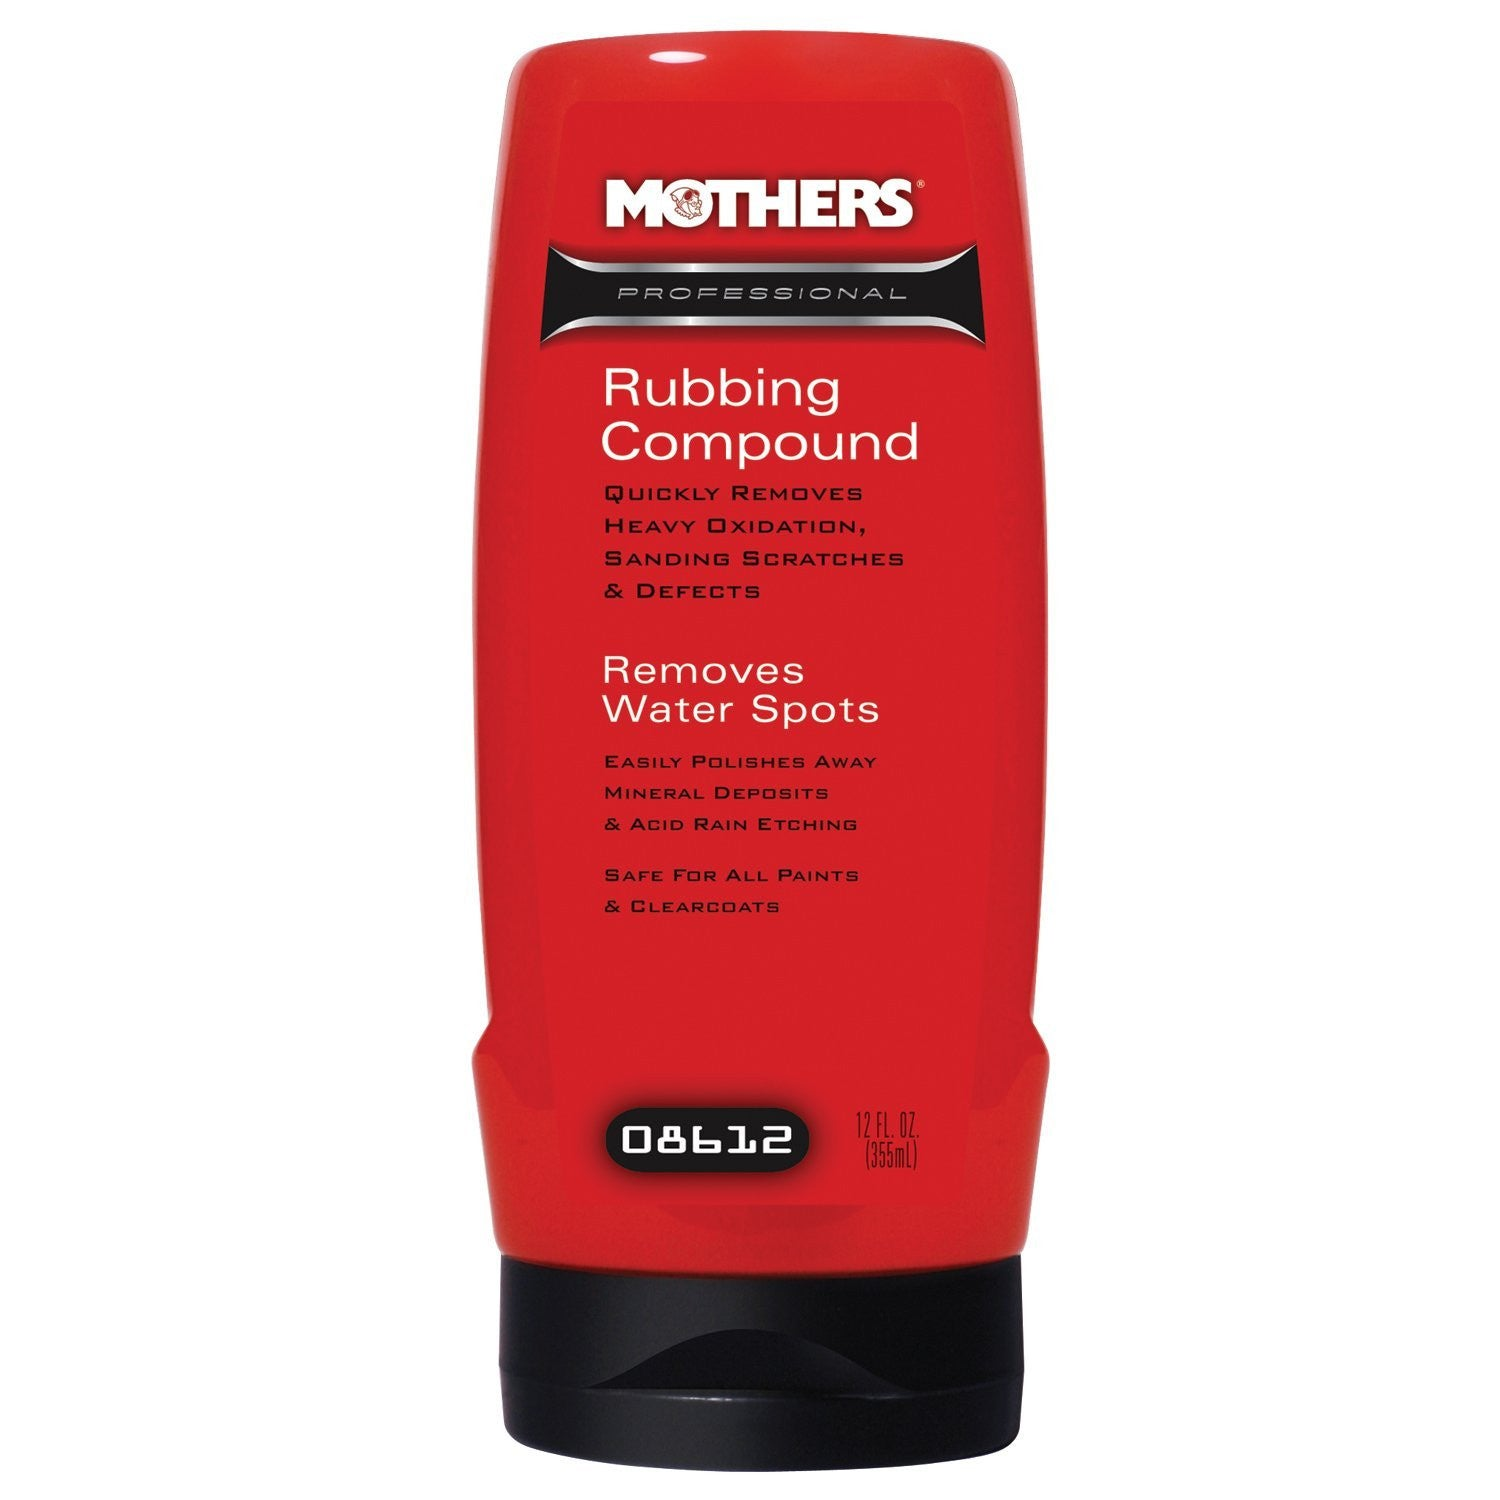 Mothers Professional Rubbing Compound 12 oz.